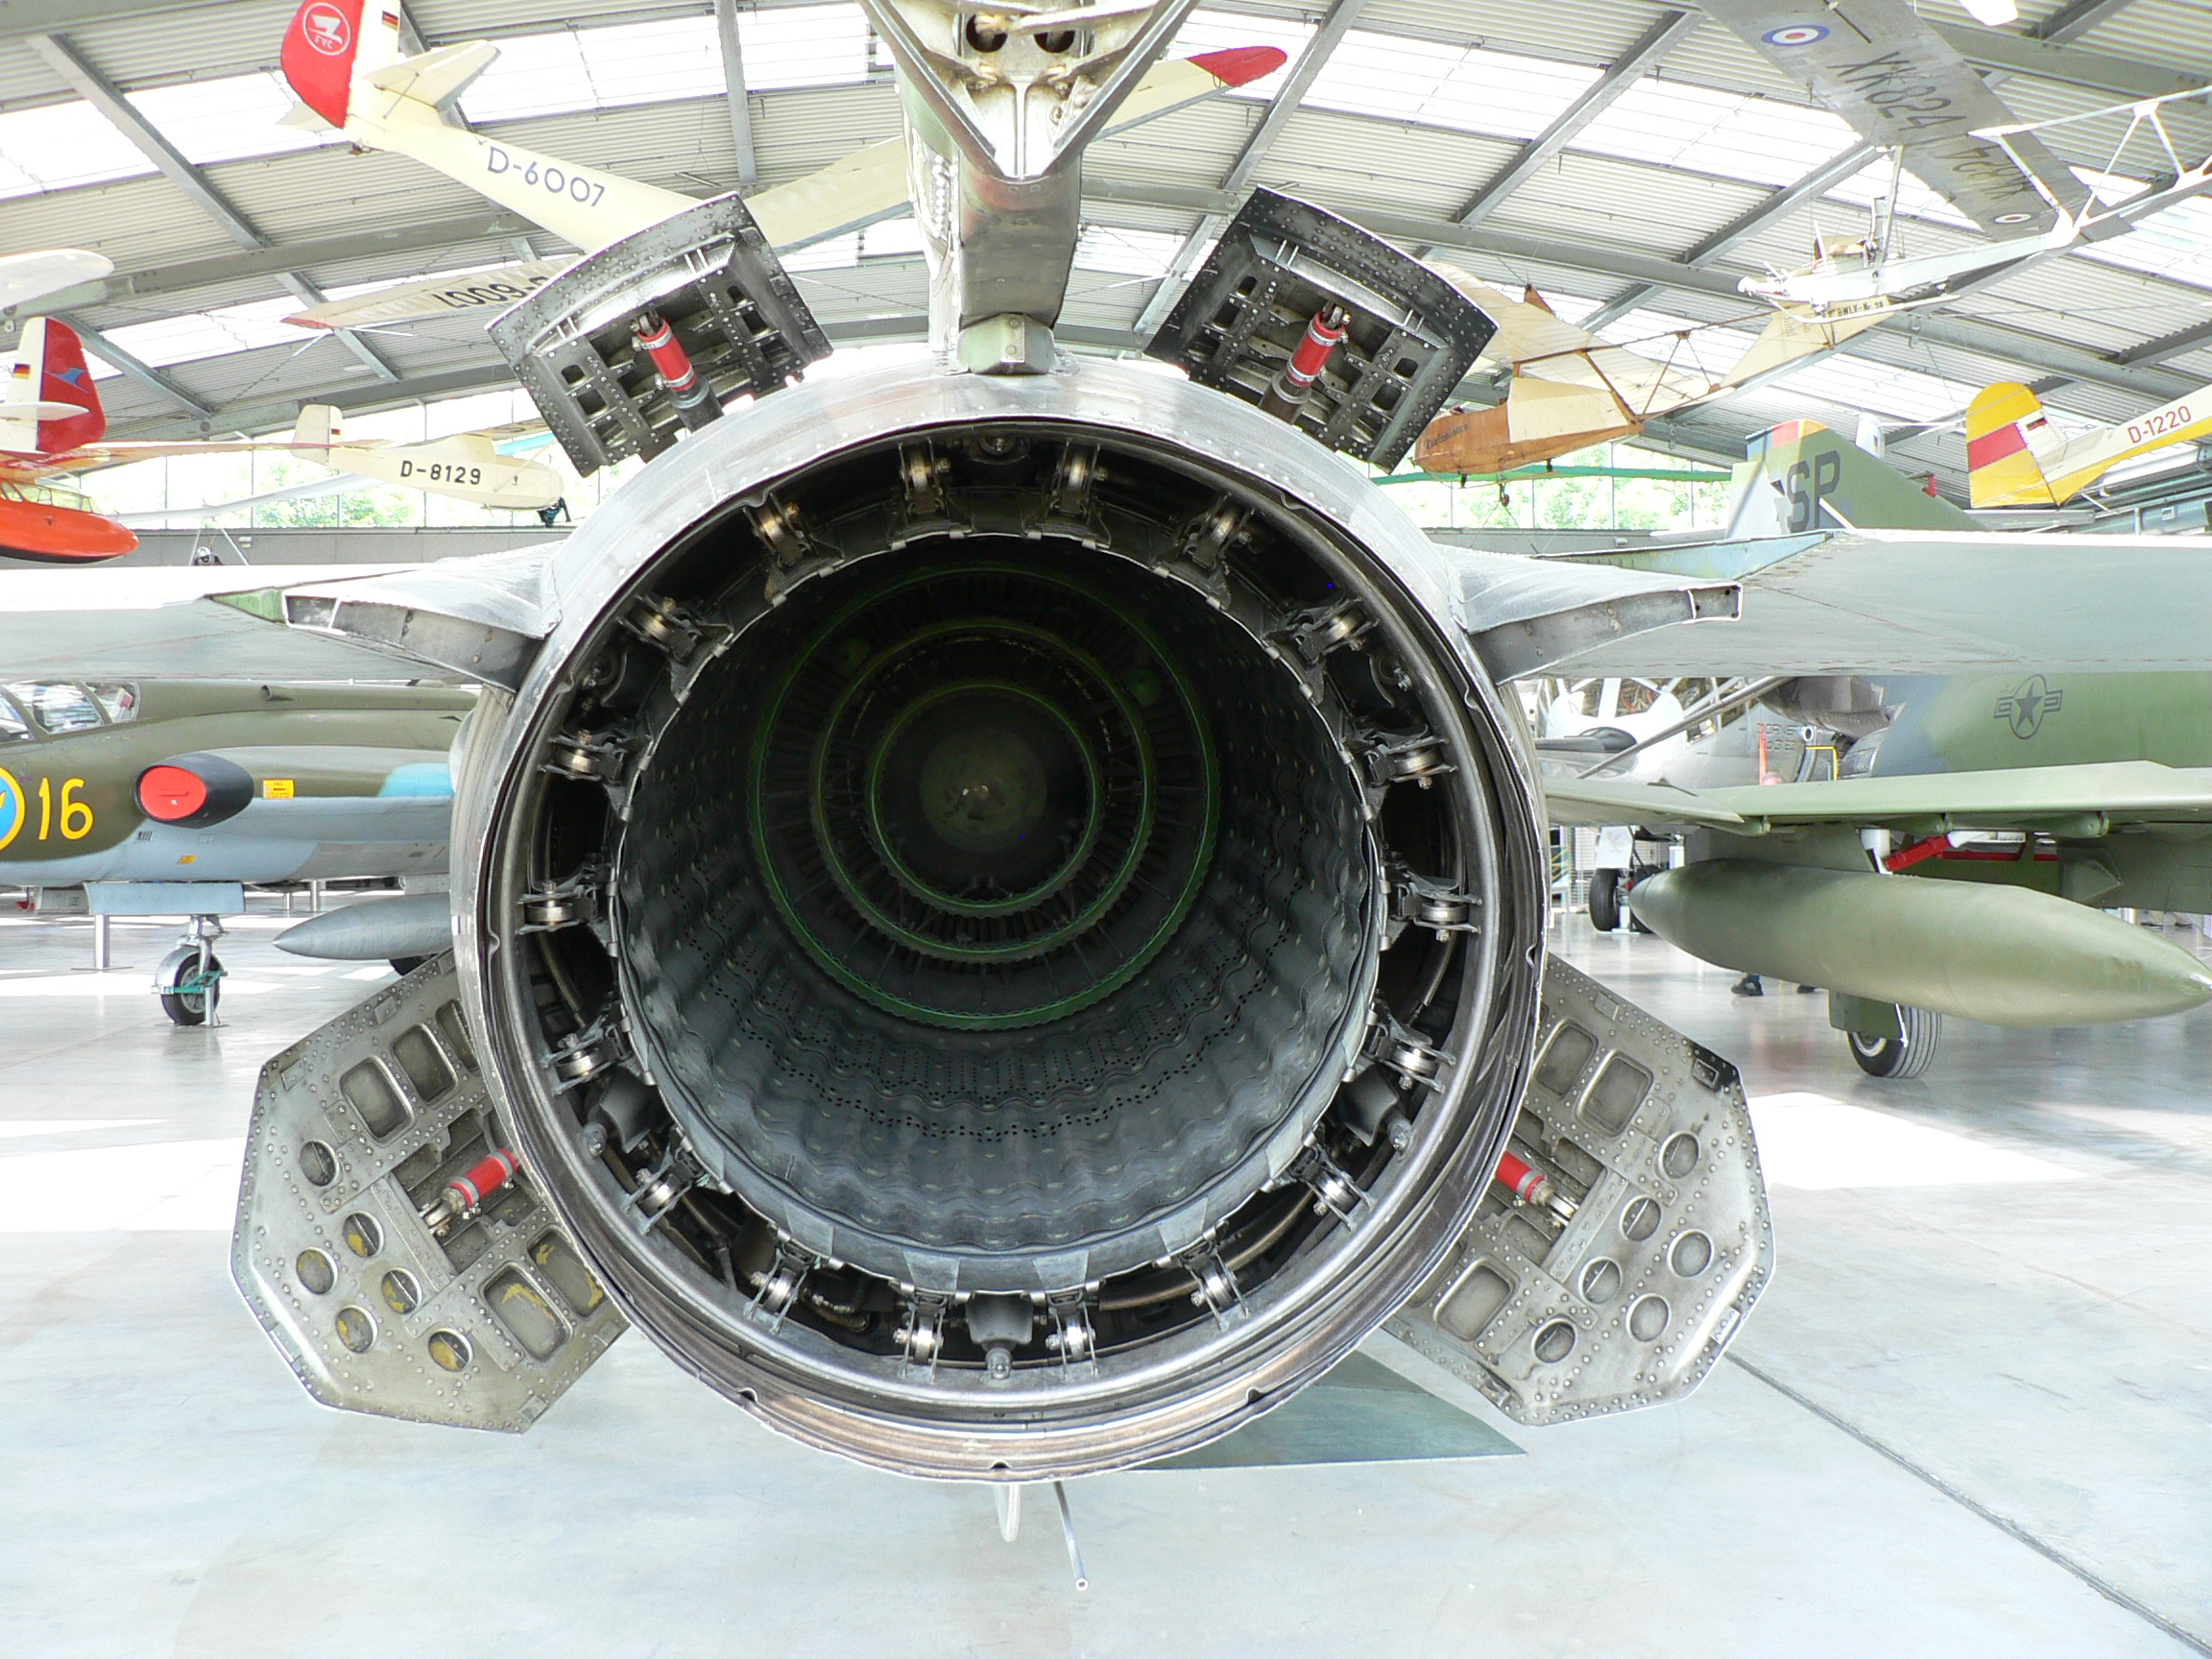 Afterburner Wikipedia Diagram Of A Typical Gas Turbine Jet Engine Air Is Compressed By The Historyedit